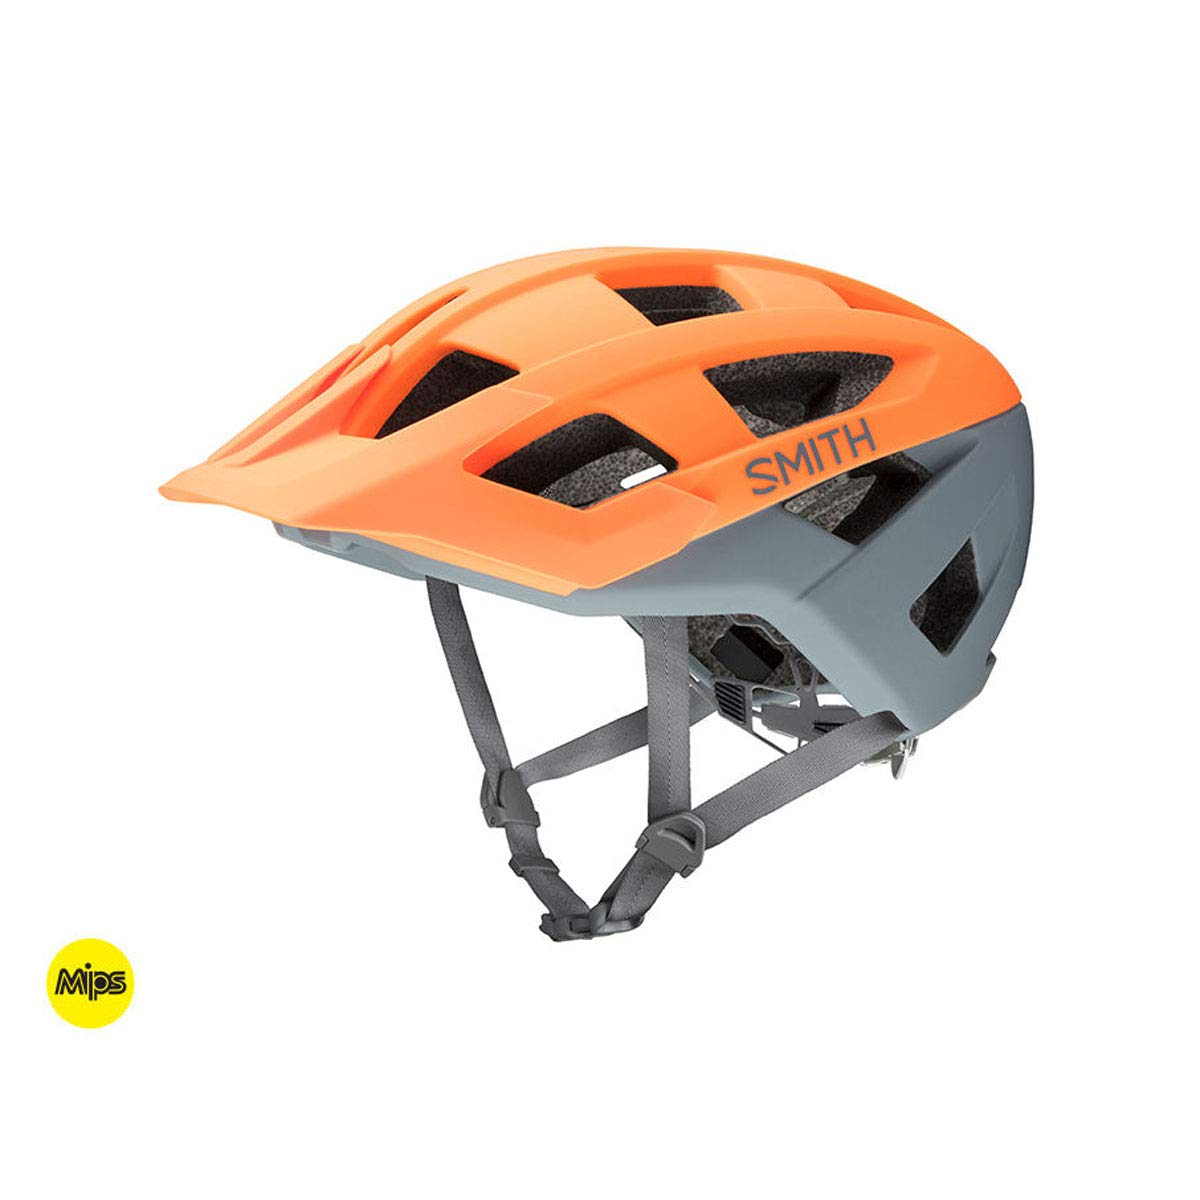 Smith Optics 2019 Venture MIPS Adult MTB Cycling Helmet - Matte Heat/Charcoal/Large by Smith Optics